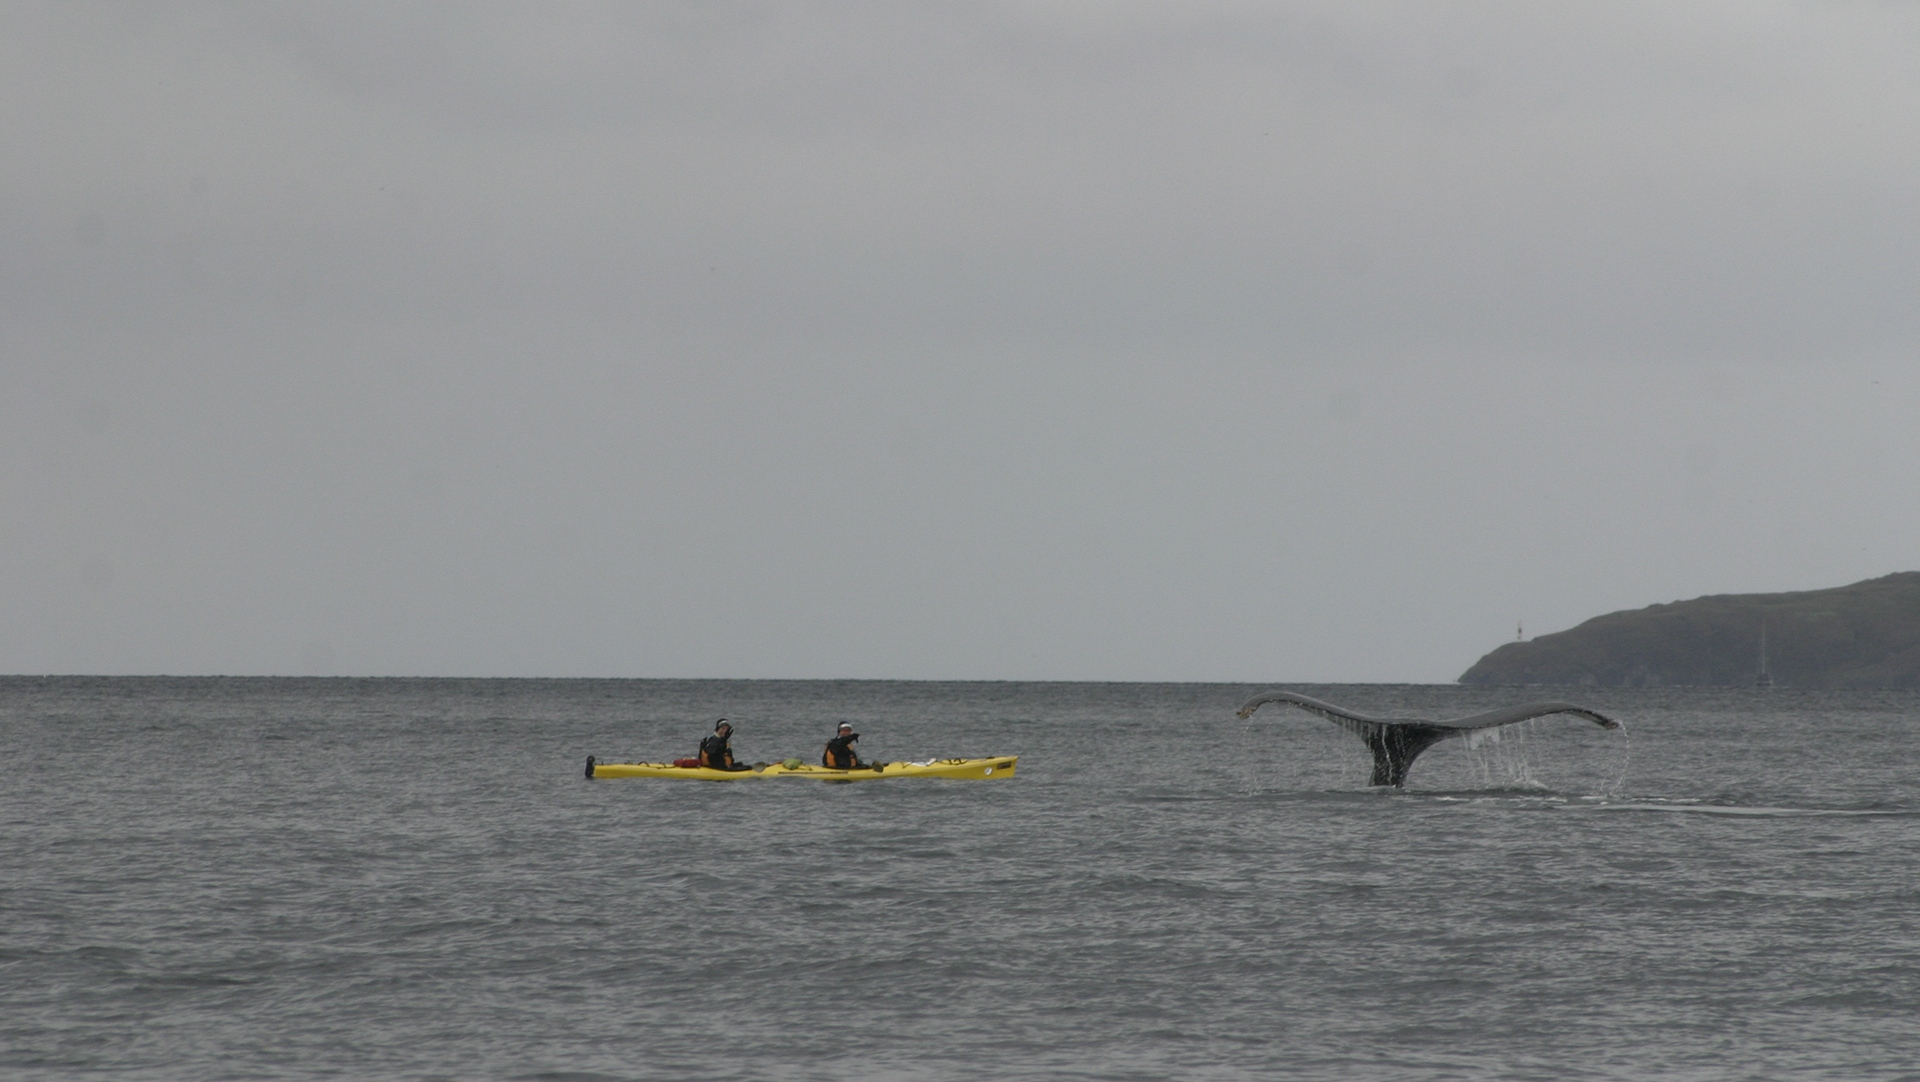 Patagonian Expedition Race, Whale Sighting, Team Kayak Expedition, Patagonia, Chile